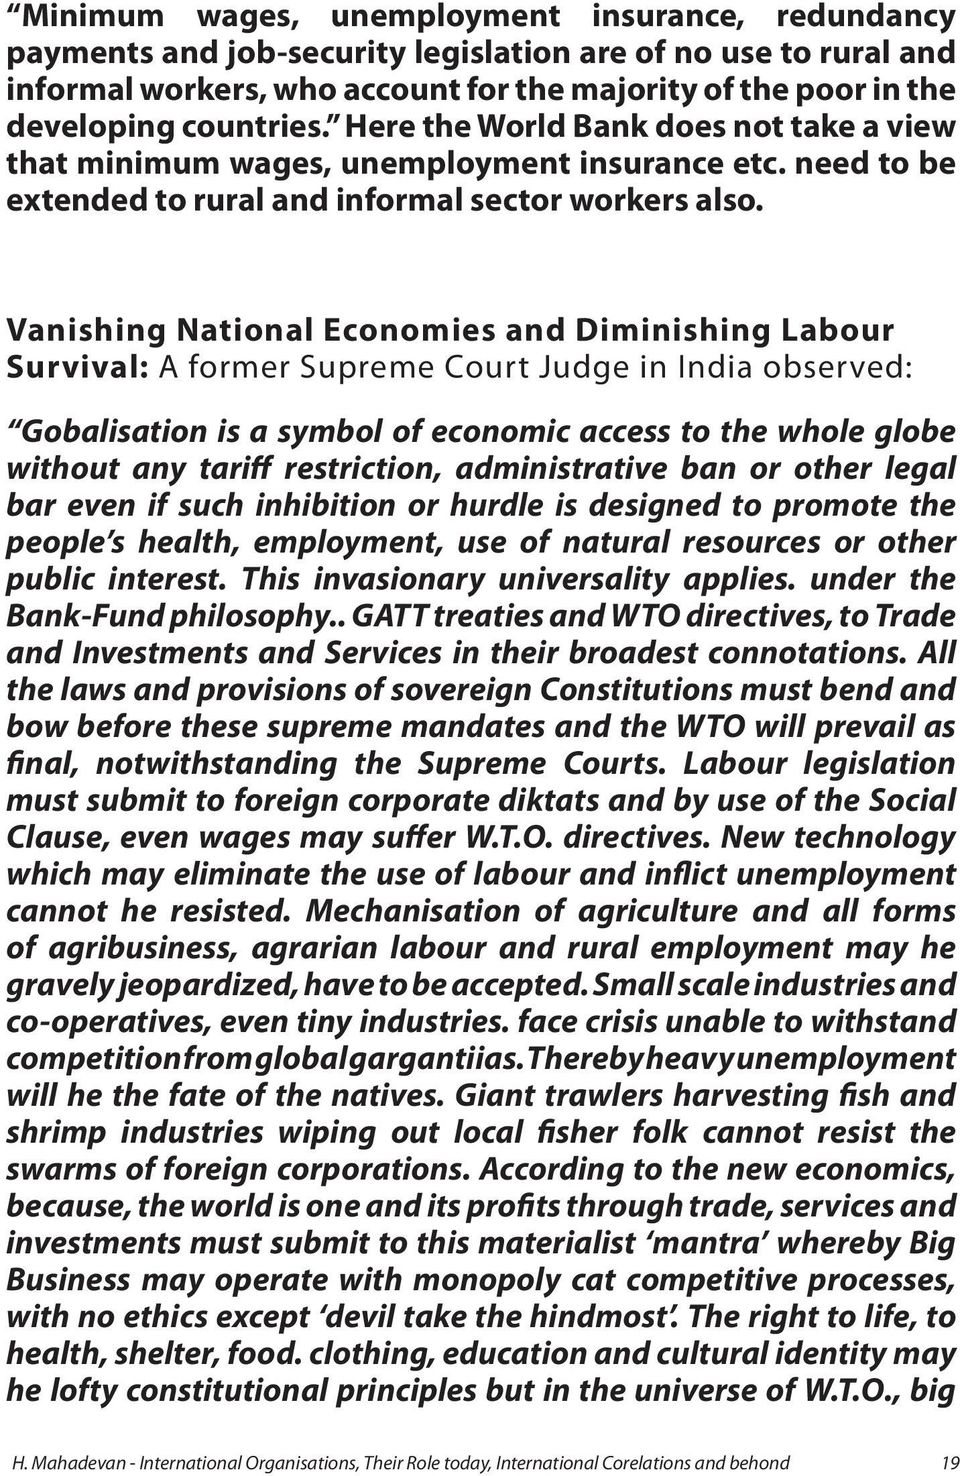 Vanishing National Economies and Diminishing Labour Survival: A former Supreme Court Judge in India observed: Gobalisation is a symbol of economic access to the whole globe without any tariff